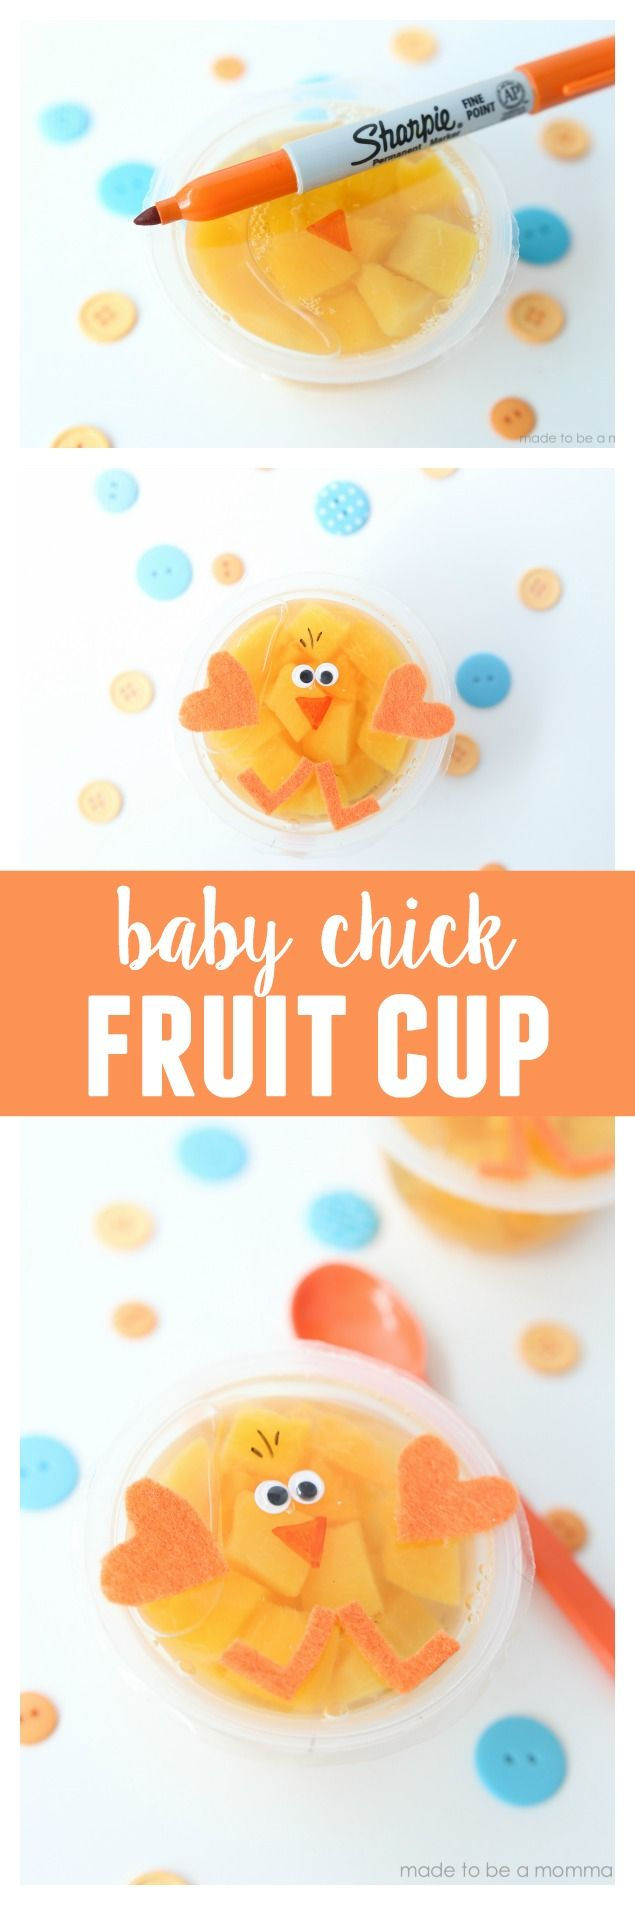 Baby Chick Fruit Cup  a fun spring idea for the kids to take in there lunch boxes or enjoy at home